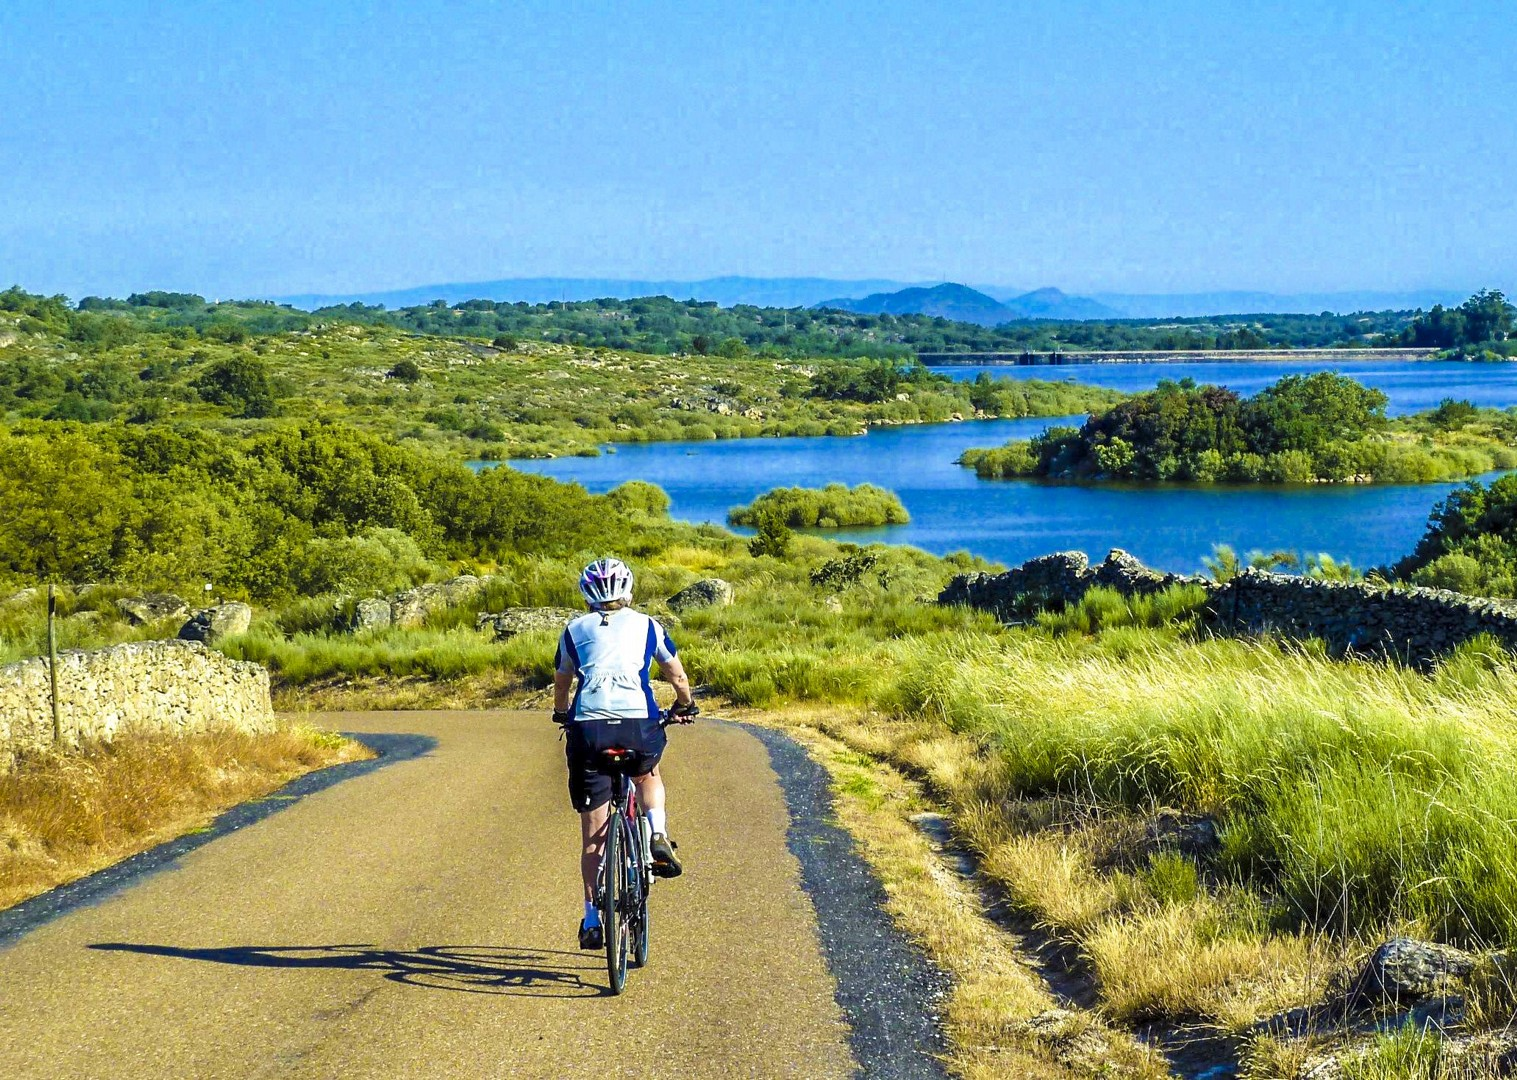 cycling-leisure-incredible-views-nature-portugal-self-guided.jpg - Portugal - Historic Villages - Self-Guided Leisure Cycling Holiday - Leisure Cycling